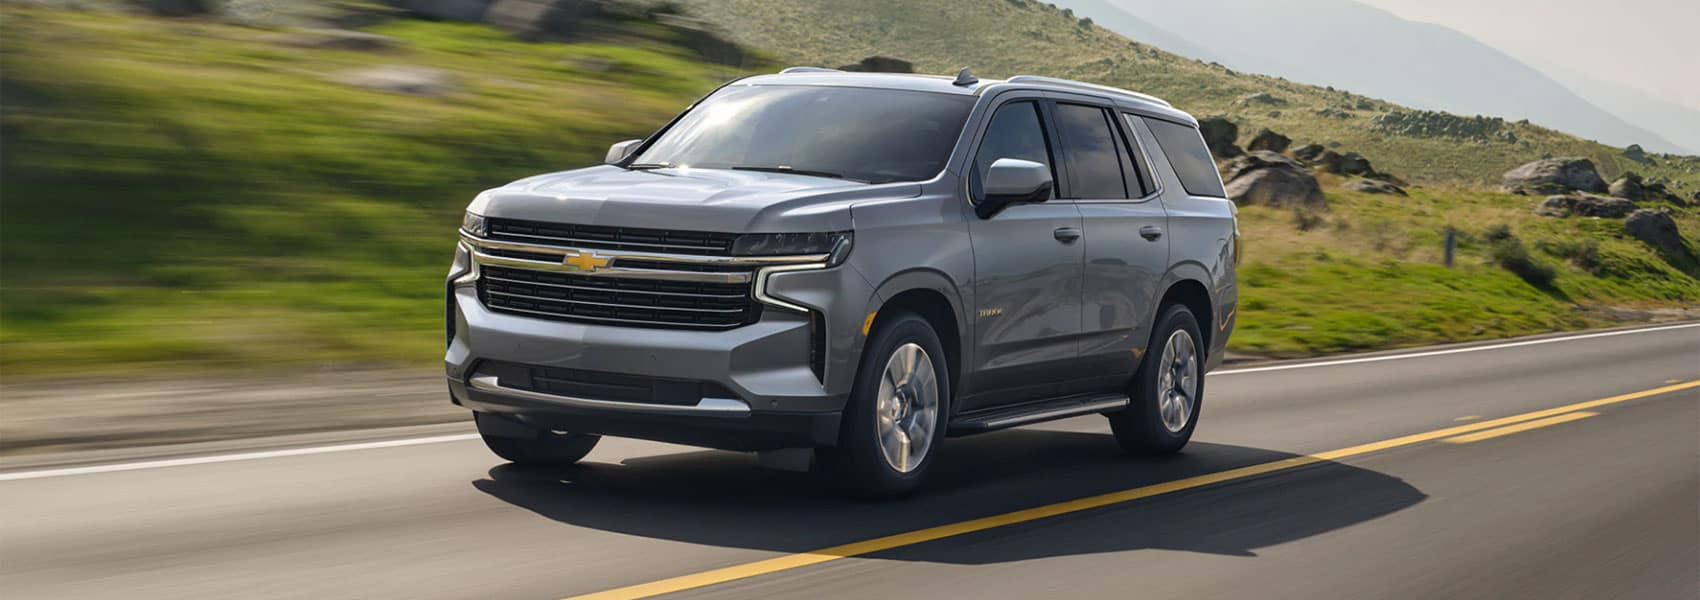 The All-New 2021 Chevrolet Tahoe